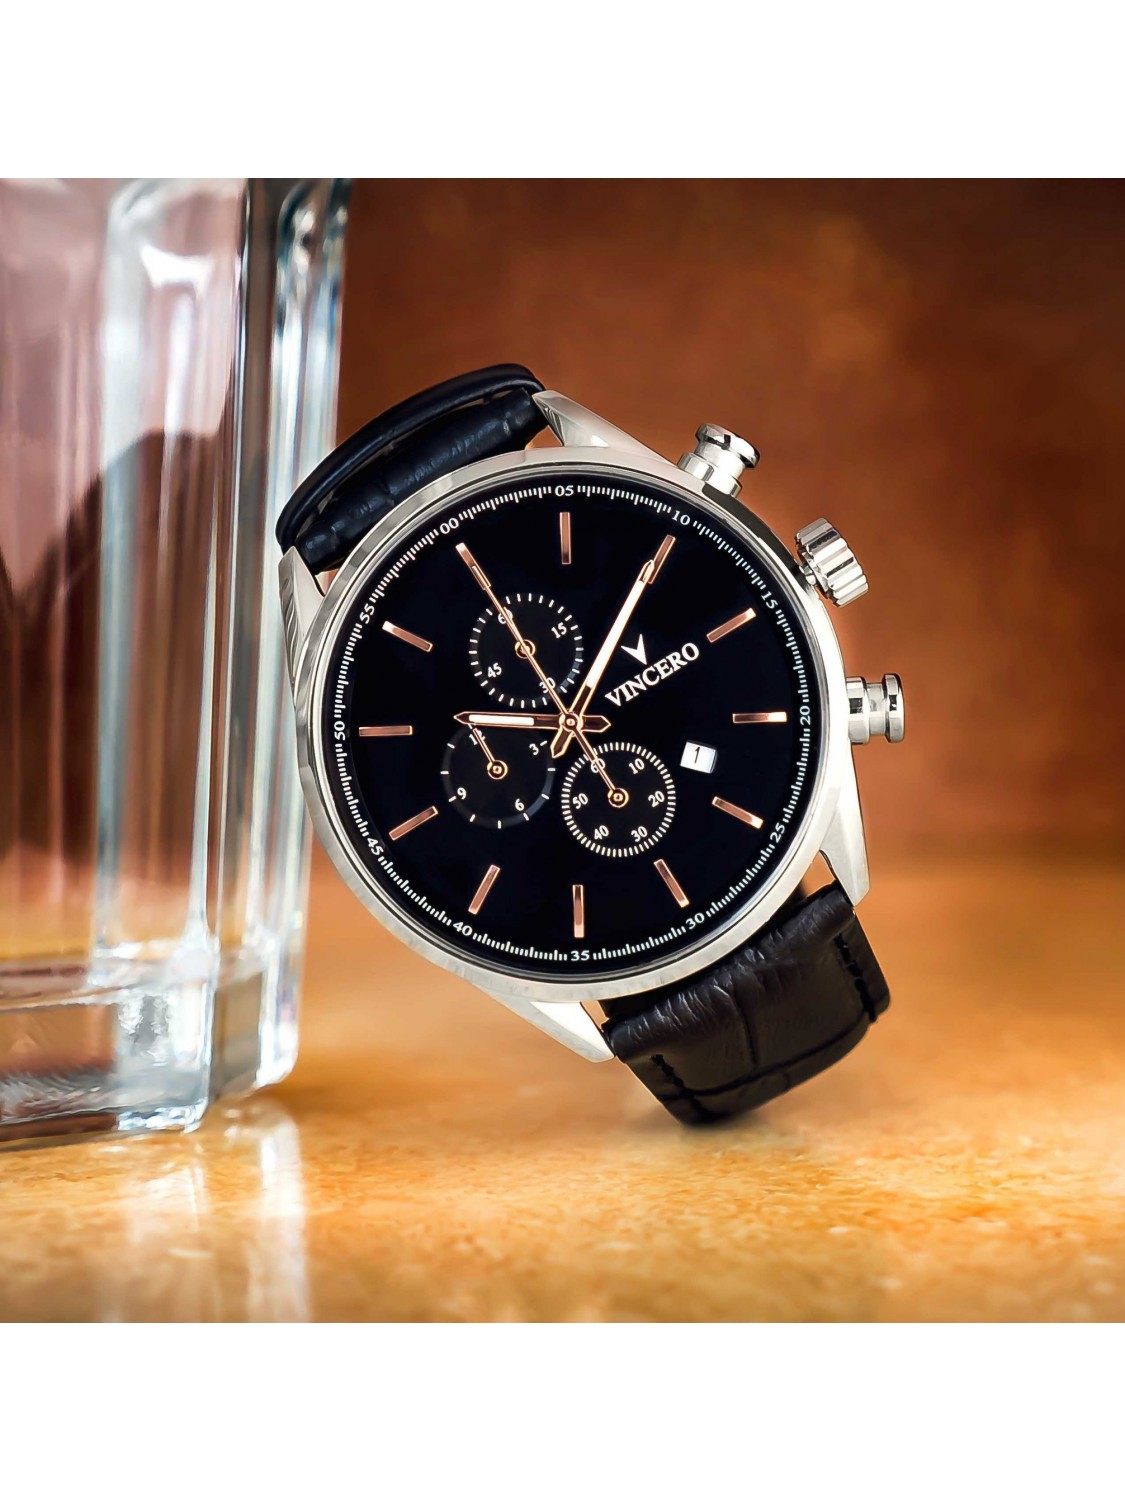 Vincero Chrono S Black/Rose Gold-31